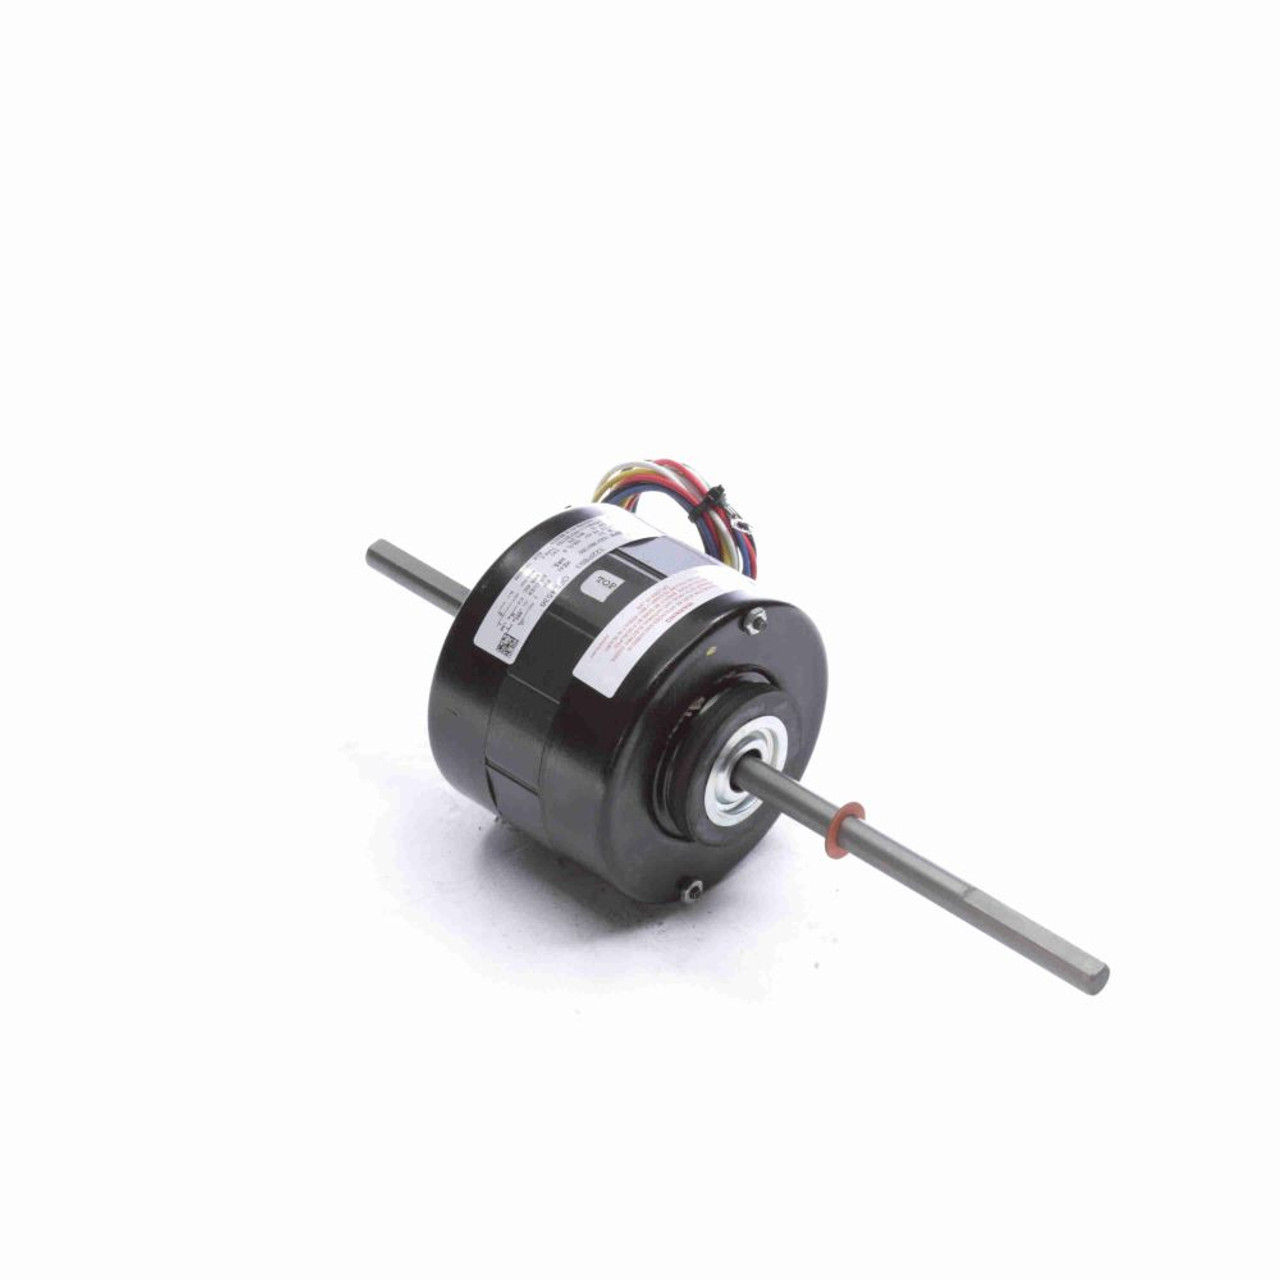 medium resolution of fedders 322p893 hvac motor 1 6 hp 1625 rpm 3 speed 115v century ofe4536